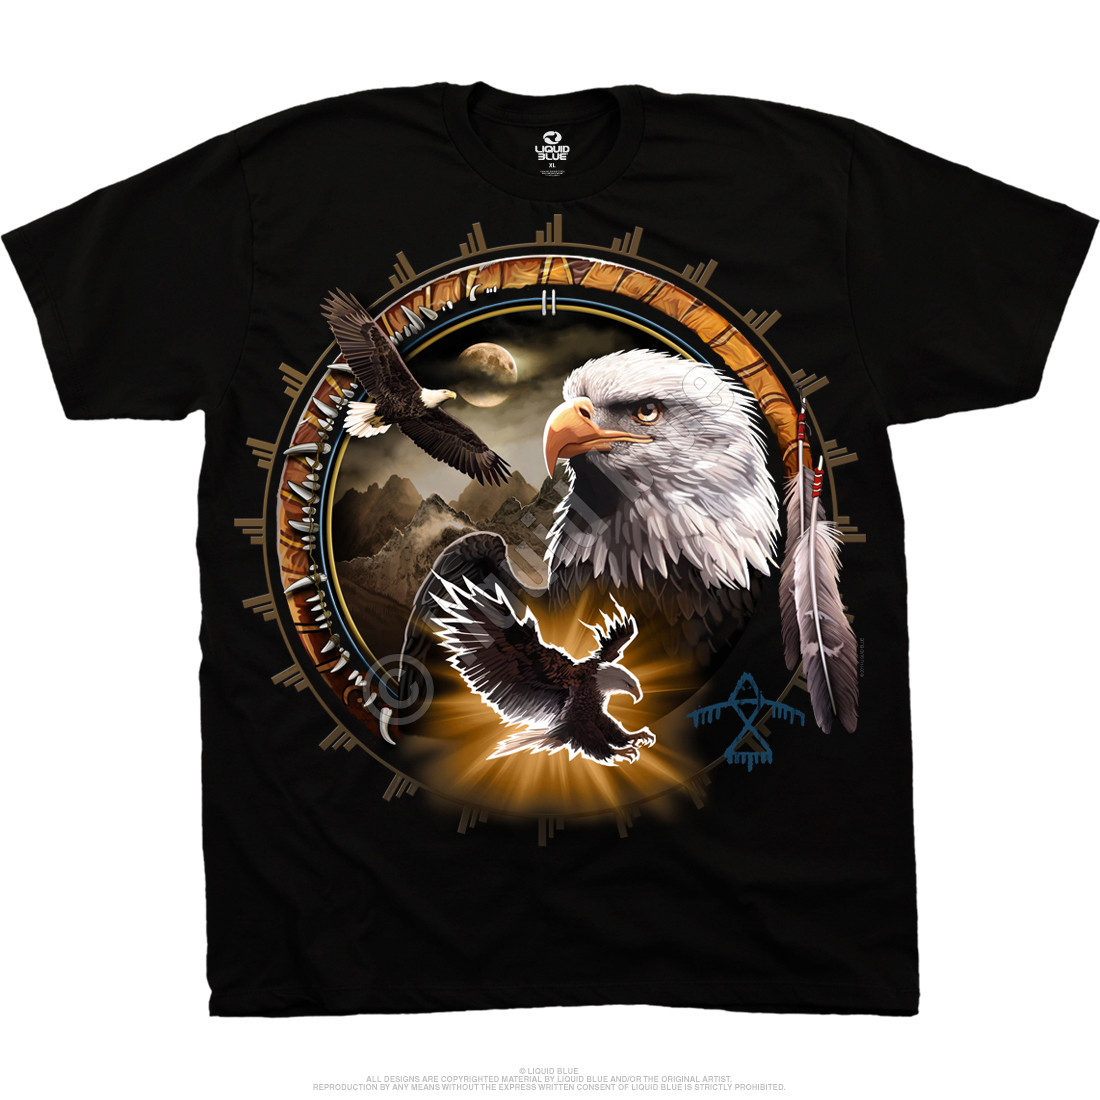 100% Authentic For Sale Cheap Price Outlet Sale Black Wolf Eagle T-Shirt Buy Cheap Low Shipping Fee Cheap Sale Shopping Online Cheapest Price HLc19